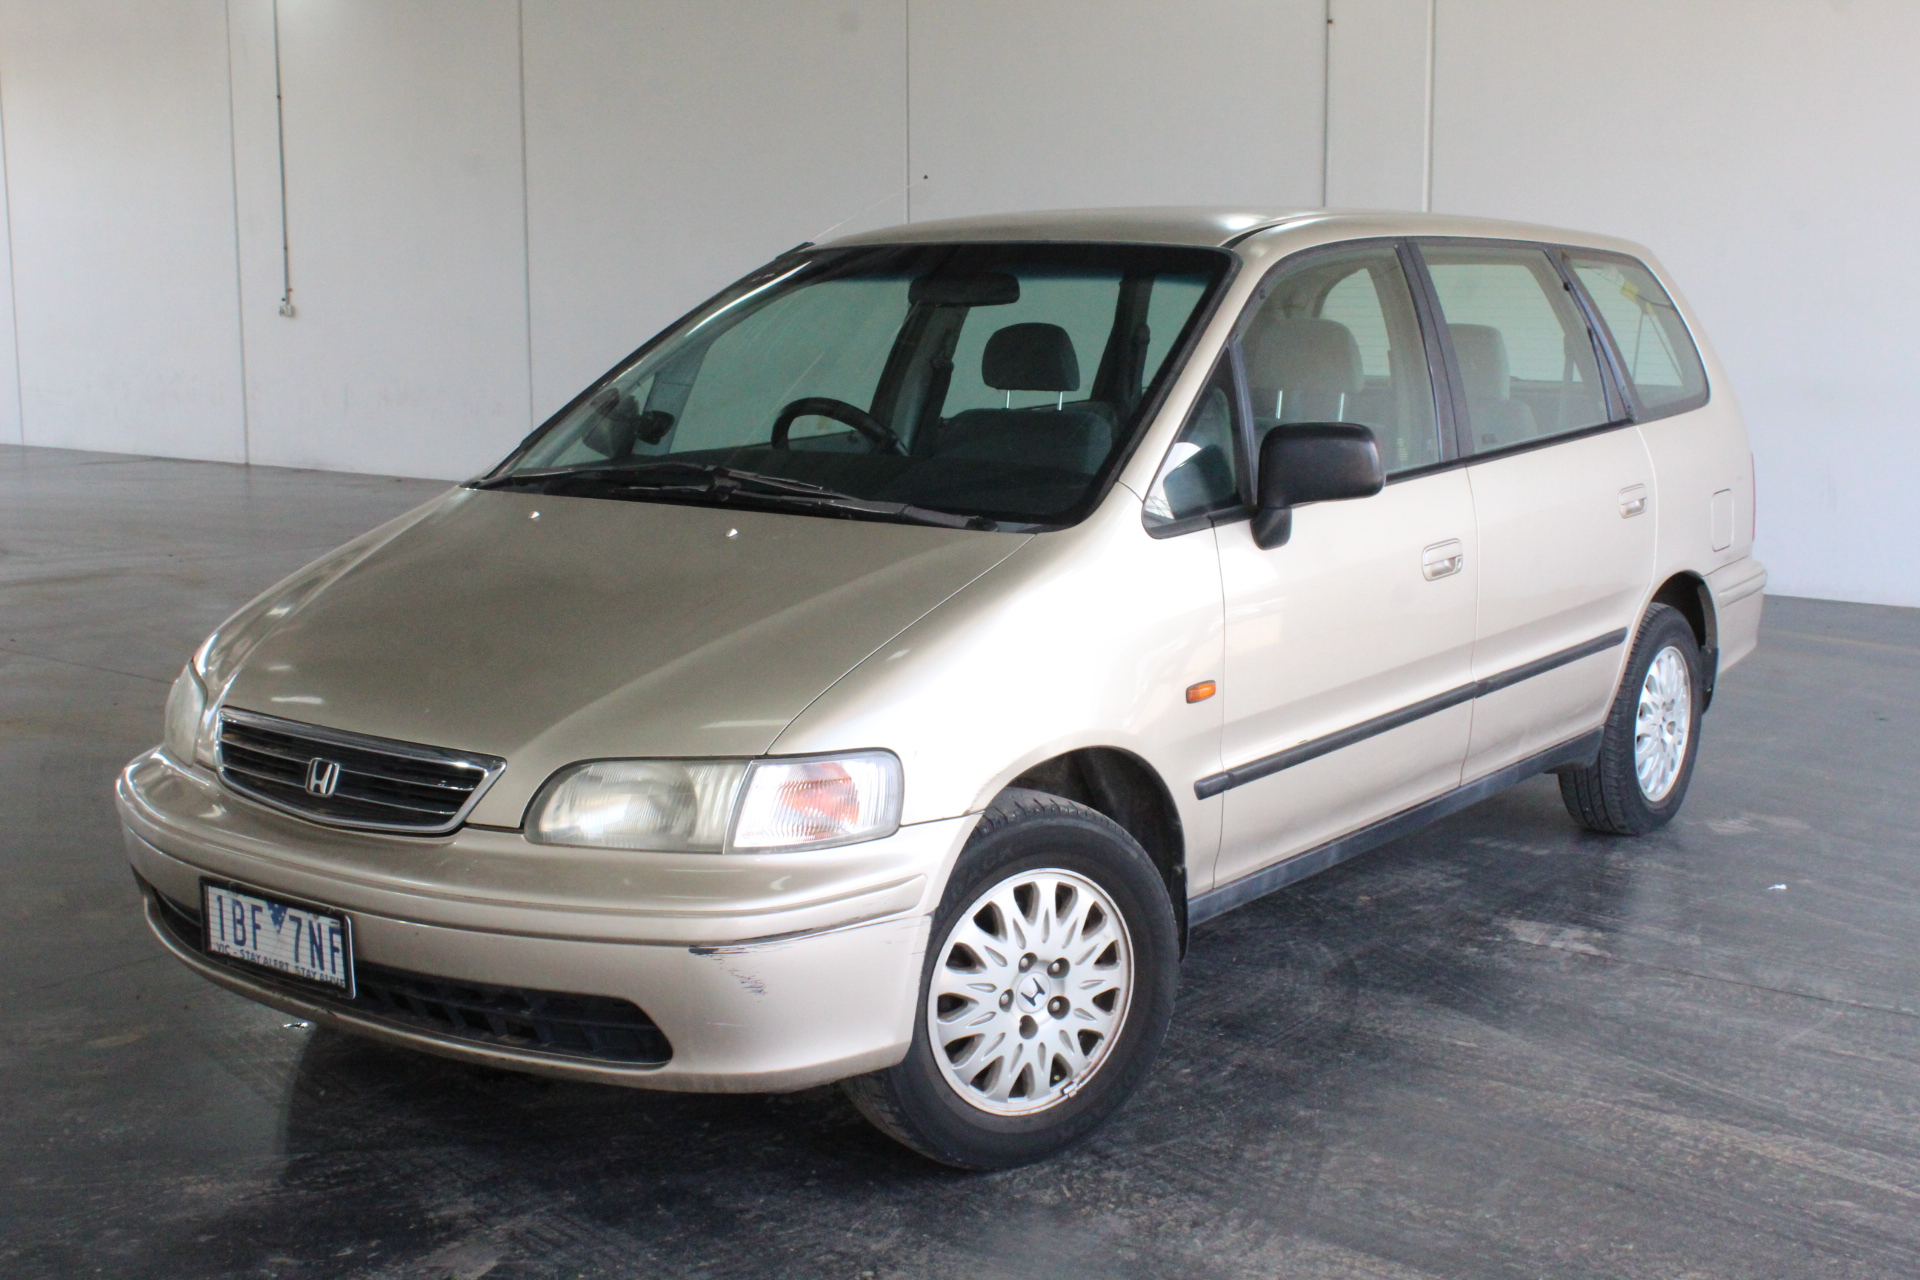 1998 Honda Odyssey Automatic 7 Seats People Mover